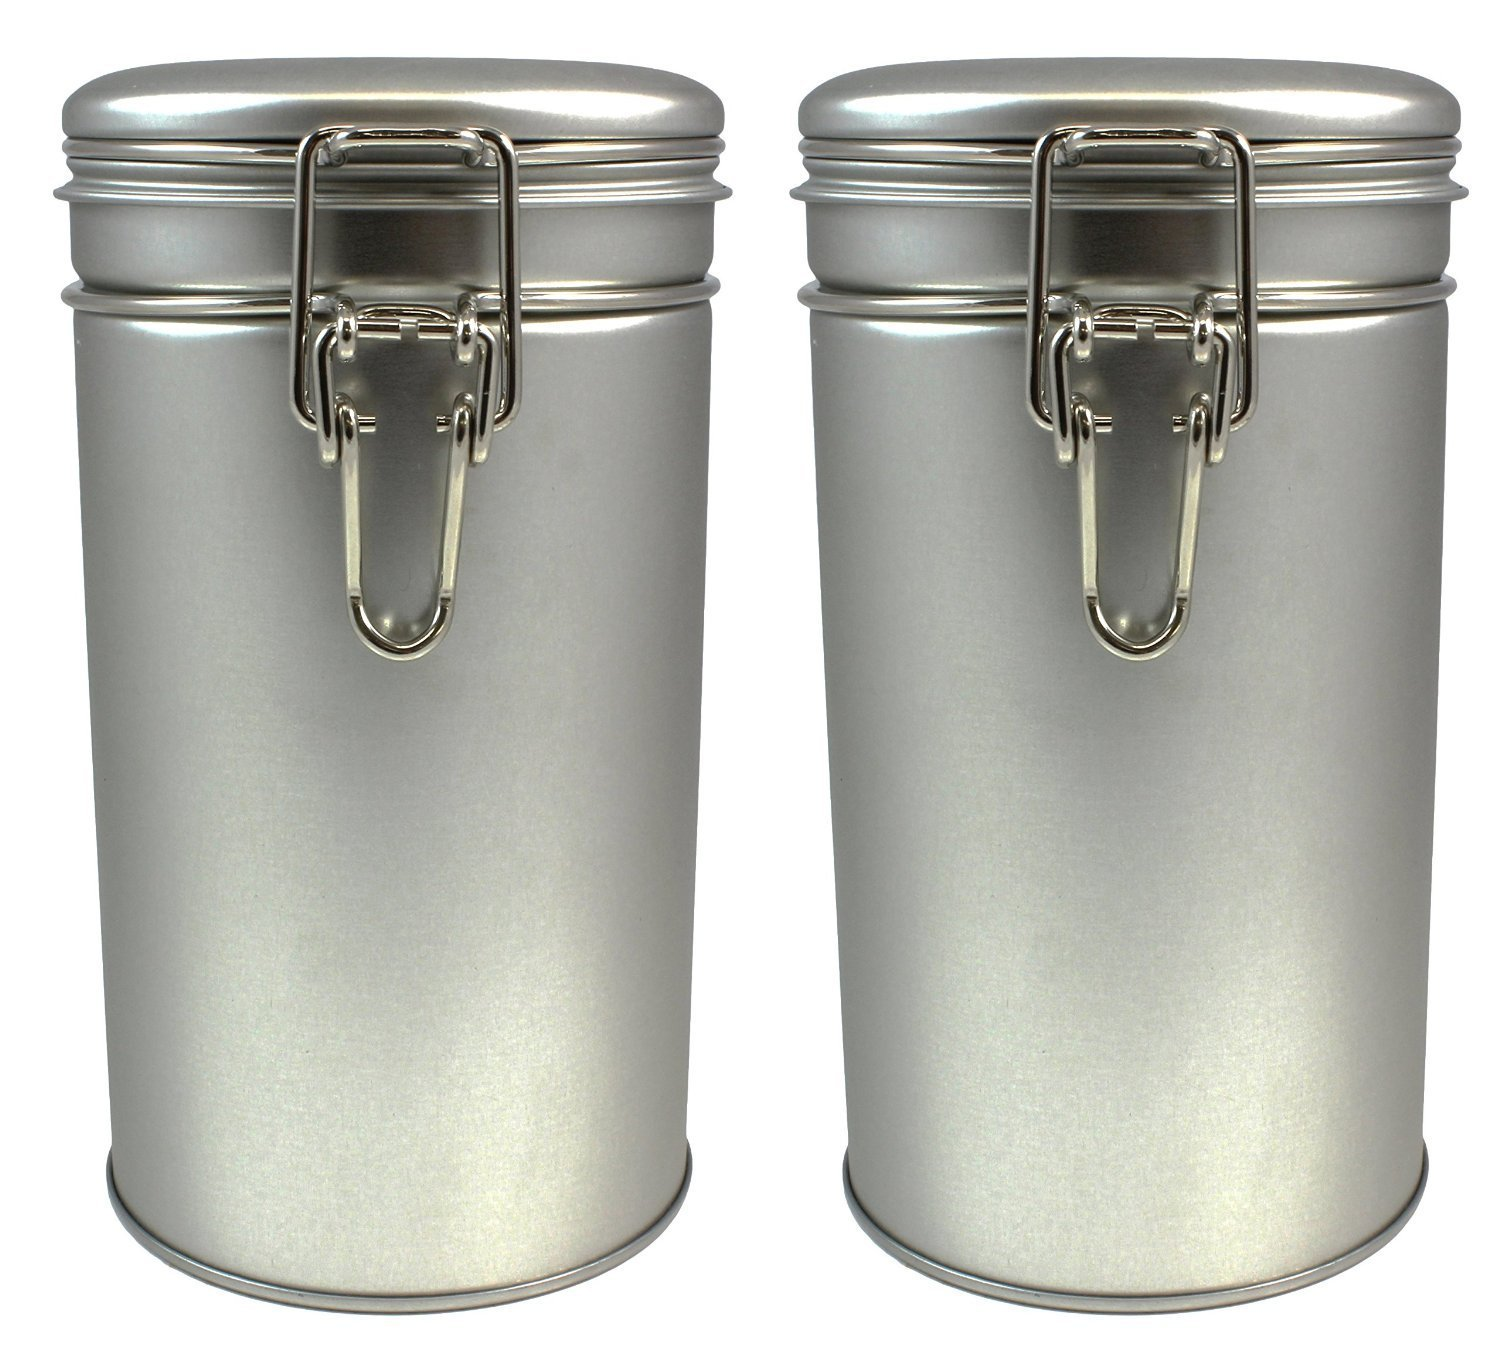 Latching Tea Tin, Tea Canister, Airtight Tea Container, Spice Storage Tins,  Stainless Steel Coffee Canister W/ Airtight Latch Rubber Seal, 12 Oz (Set  Of 2) ...